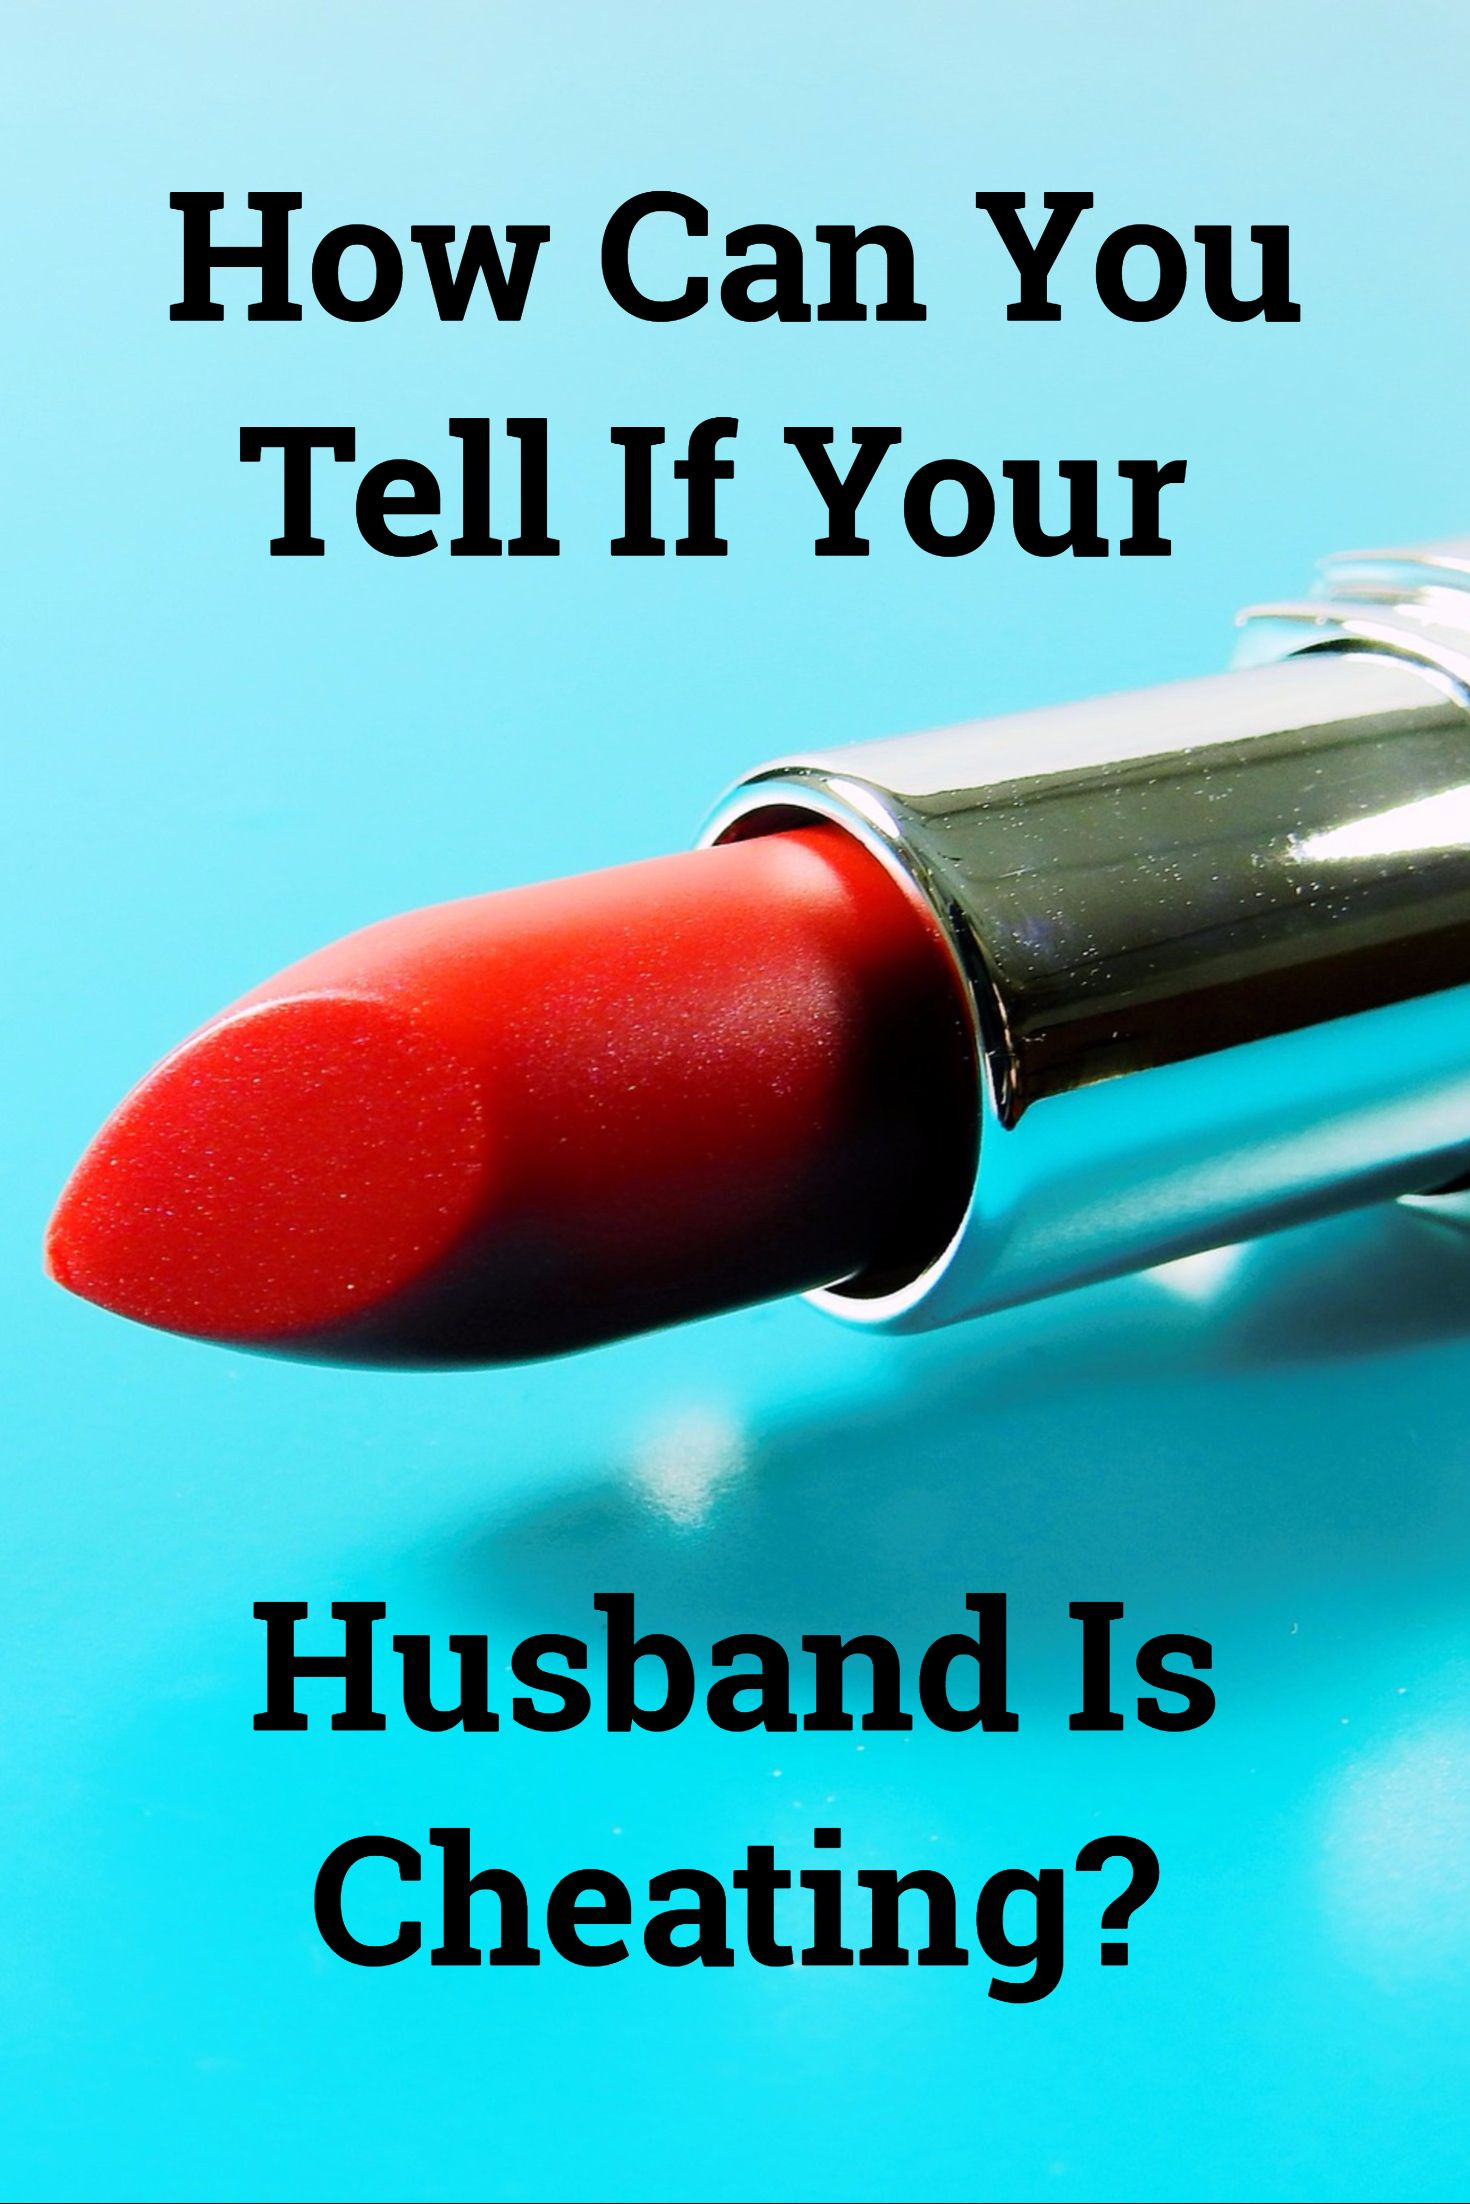 Ways to tell your husband is cheating